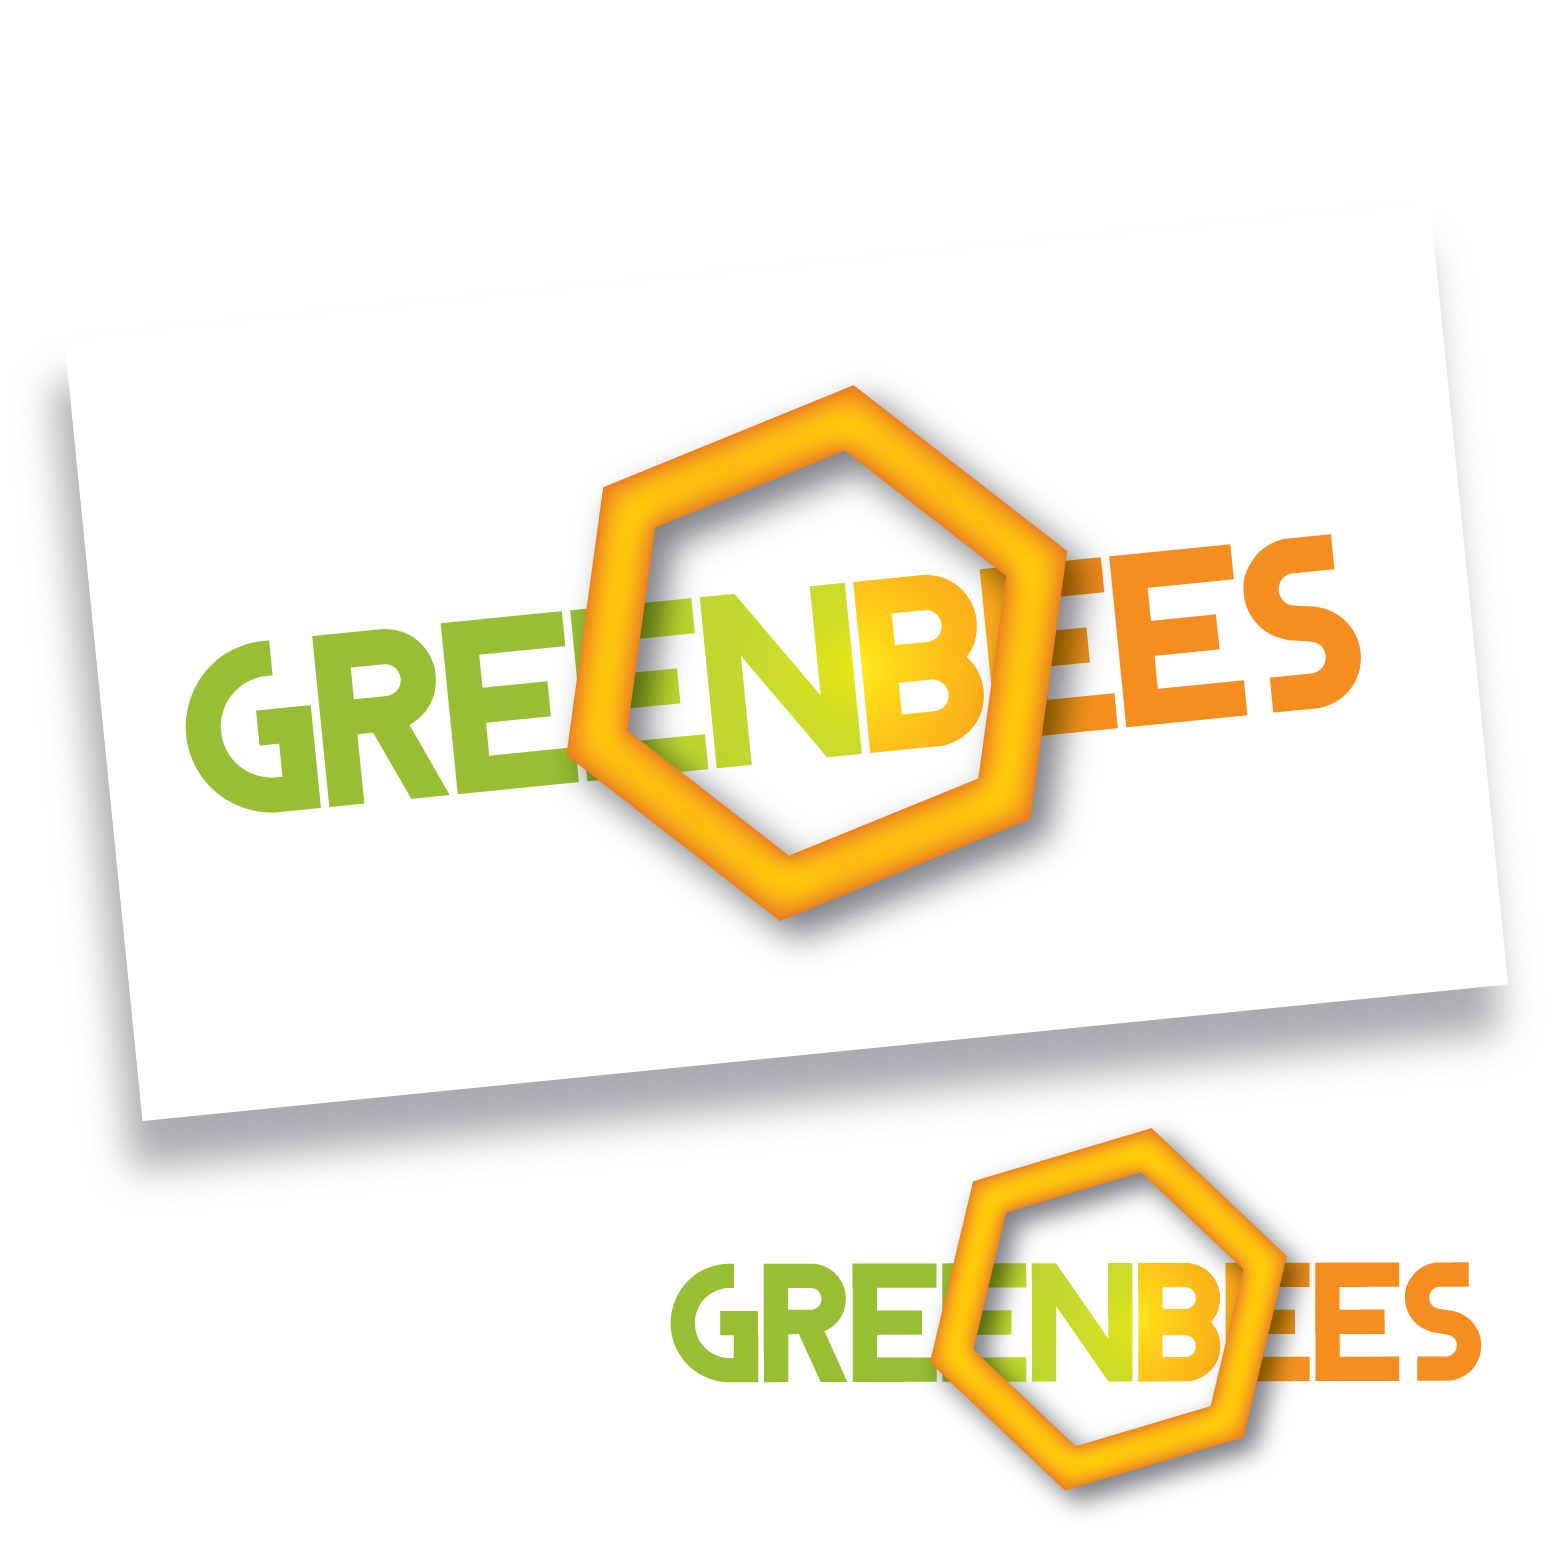 Logo Design by Teresa Abney - Entry No. 171 in the Logo Design Contest Greenbees Logo Design.